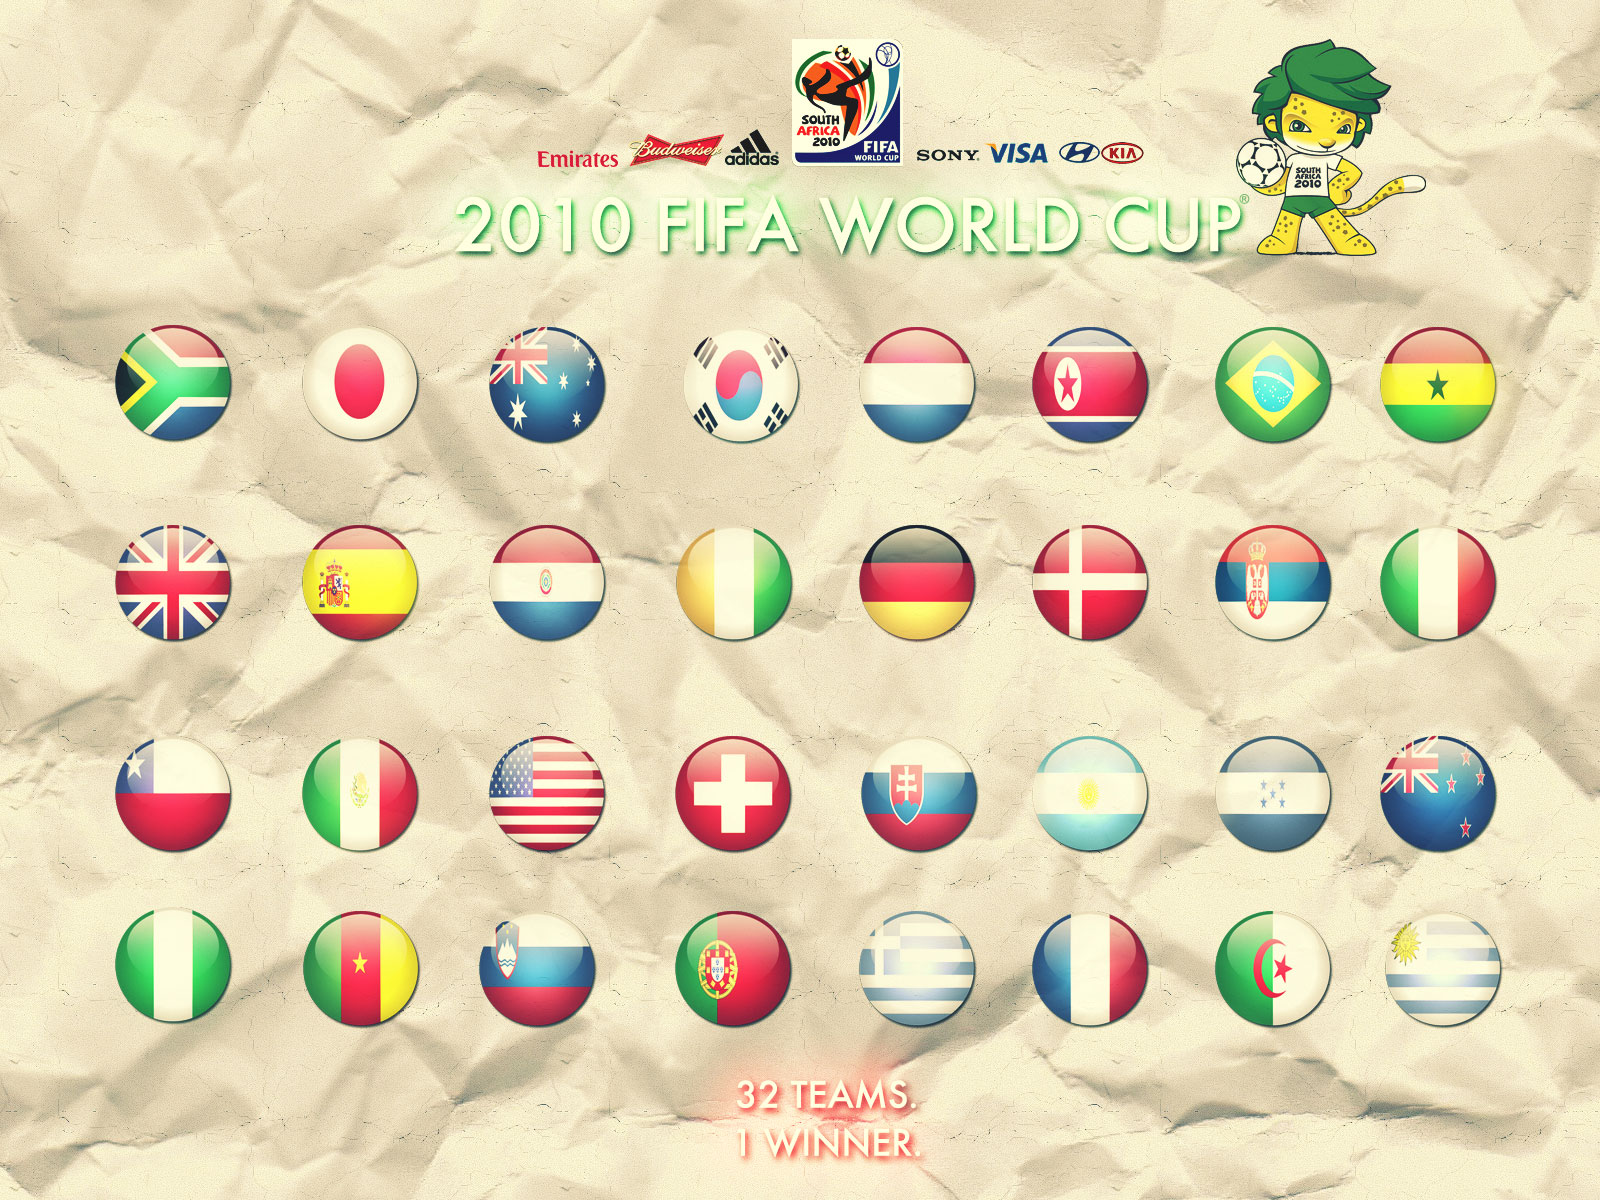 FIFA 2010 World CUP Wallpapers and Posters